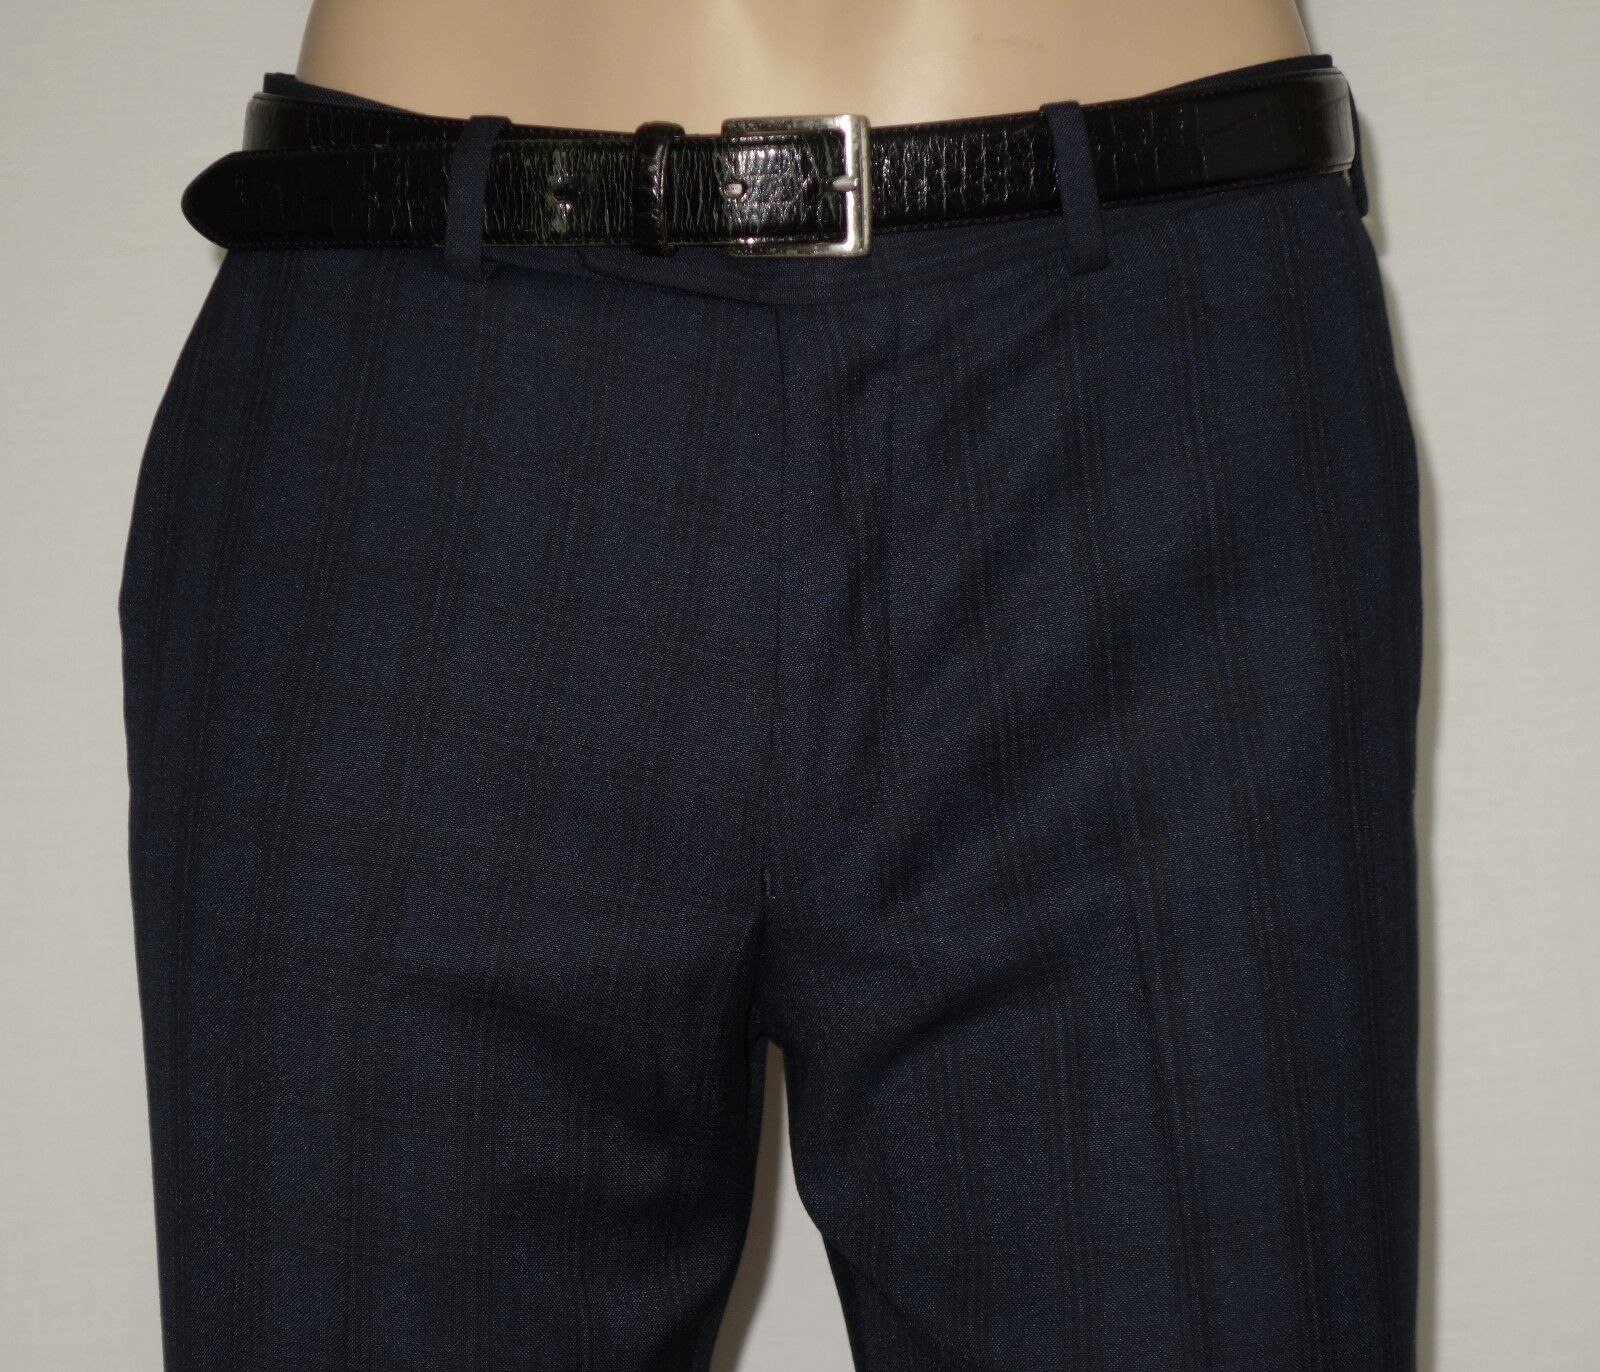 NEW John Varvatos Pants in Navy W30xL32 Made in India